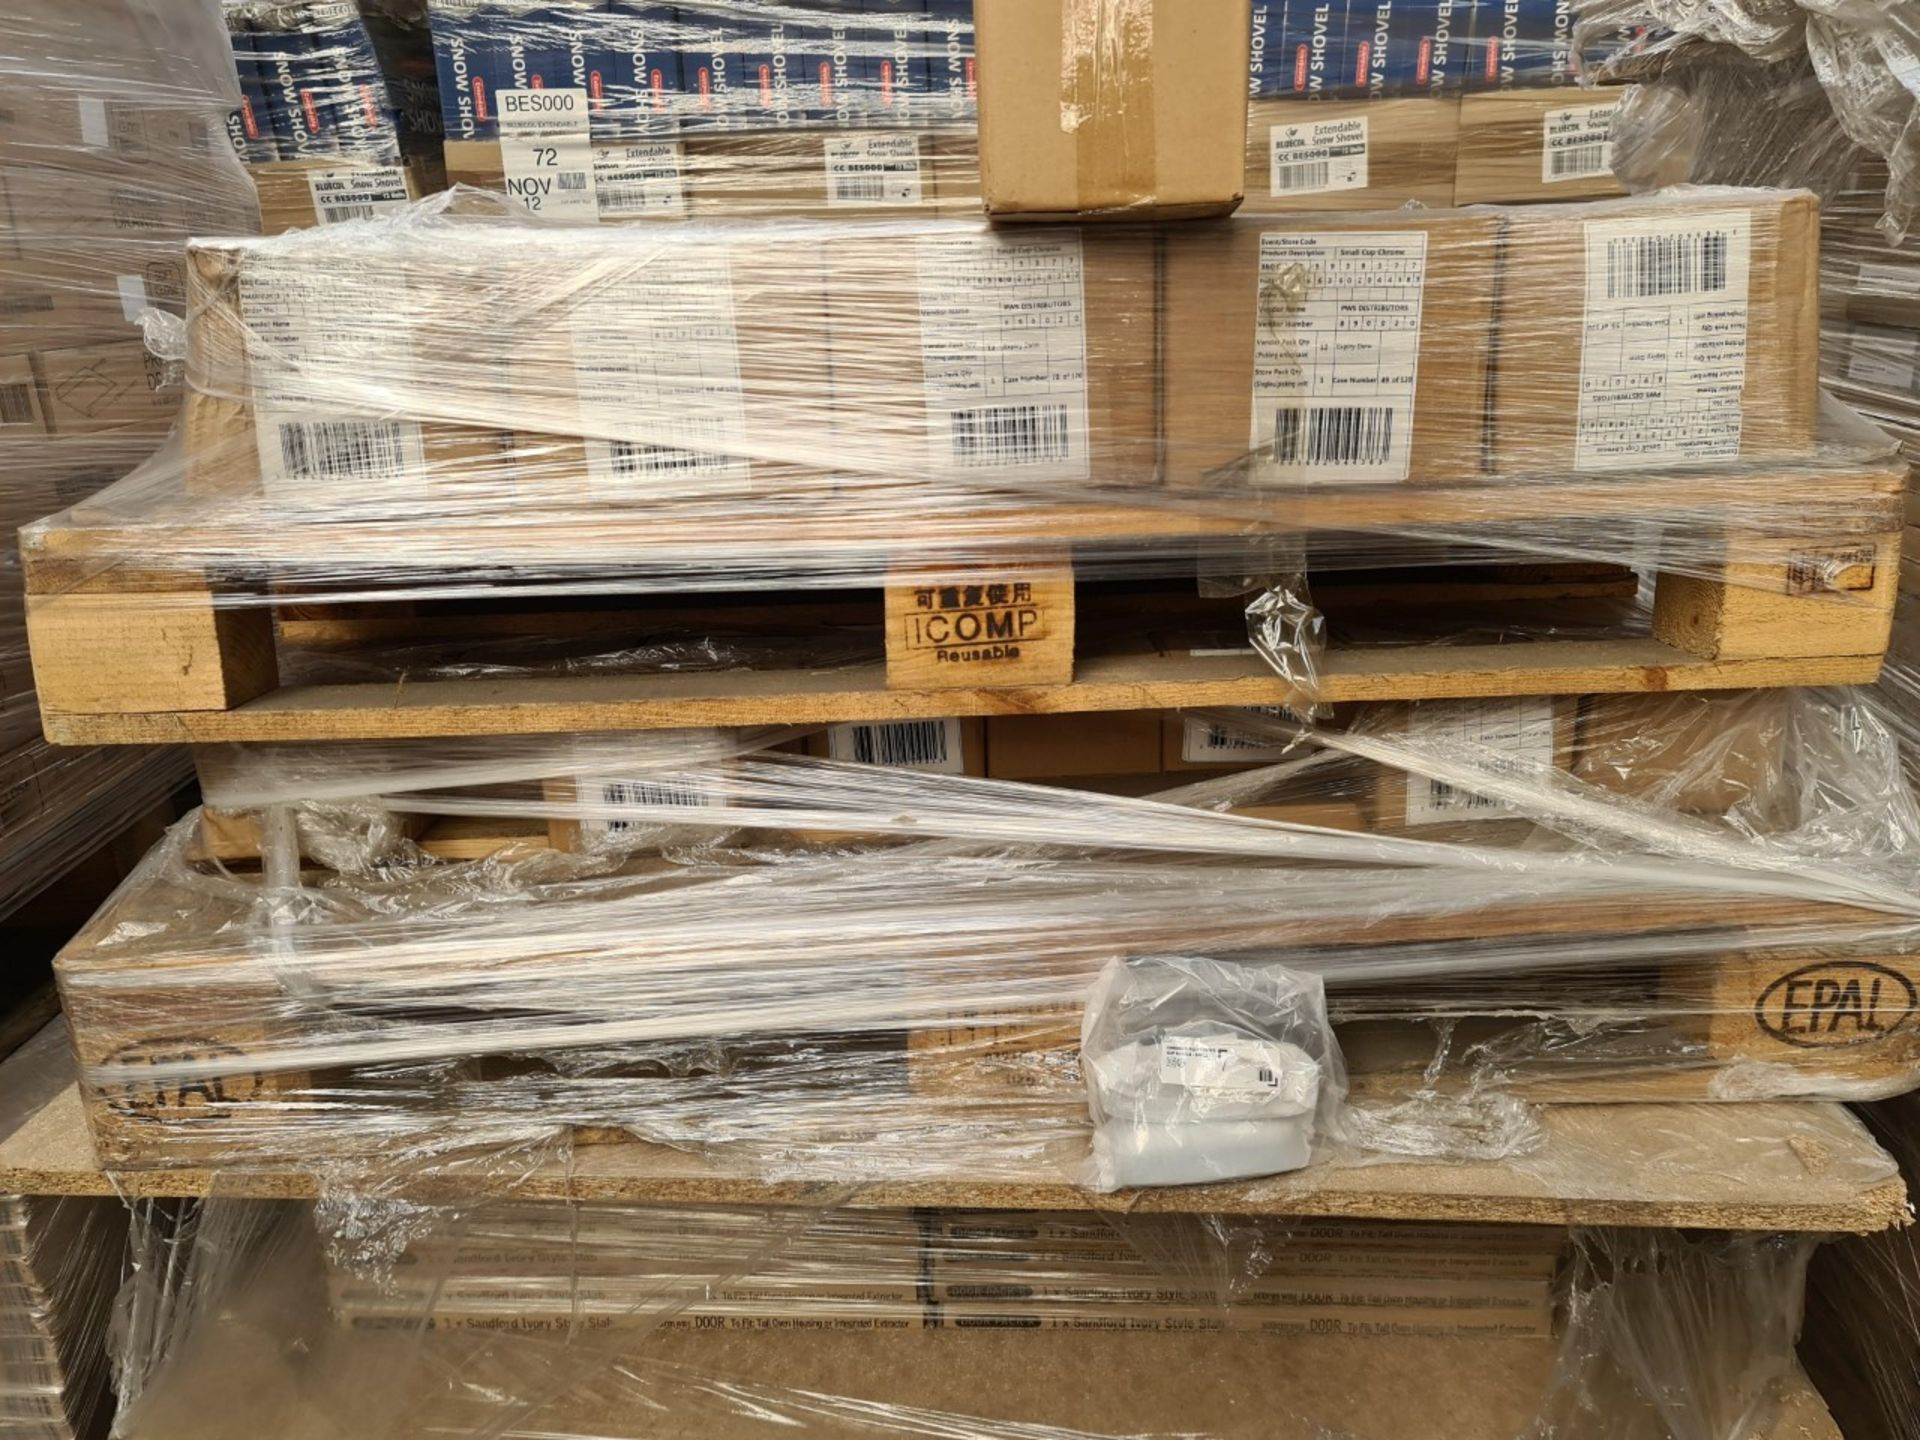 Kitchen Distributor Stock Liquidation-Circa 5,040 items of Brand-New Kitchen Goods - Sold As One Lot - Image 34 of 42